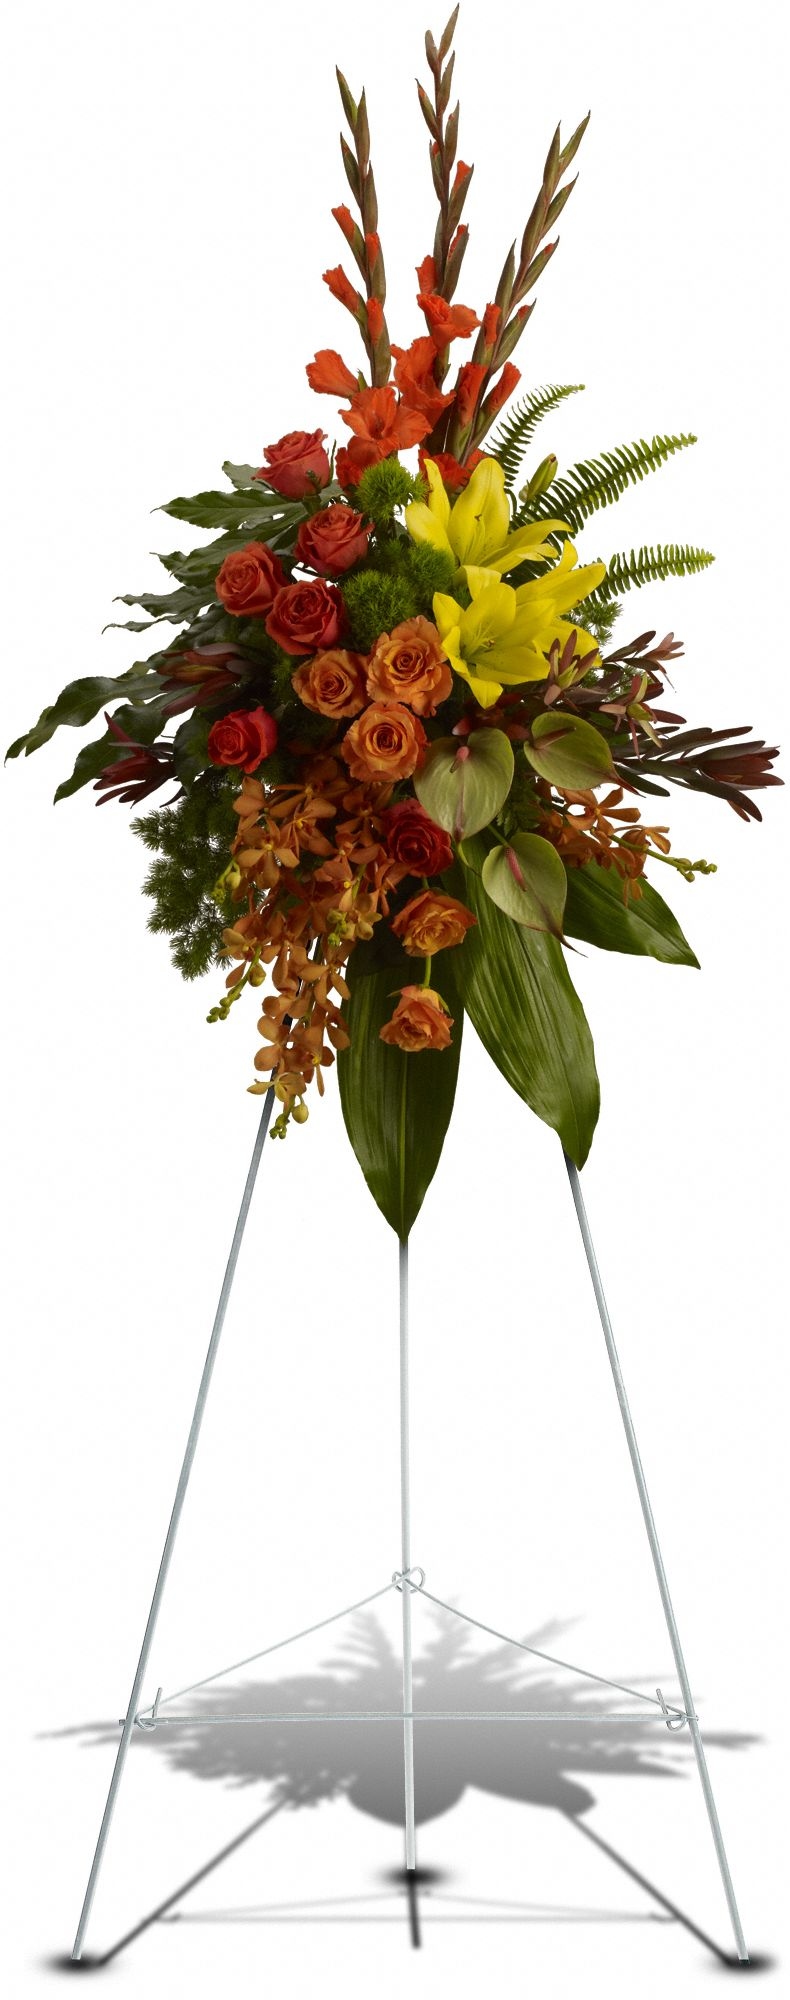 Elegant Tribute Spray Sympathy Arrangement Teleflora